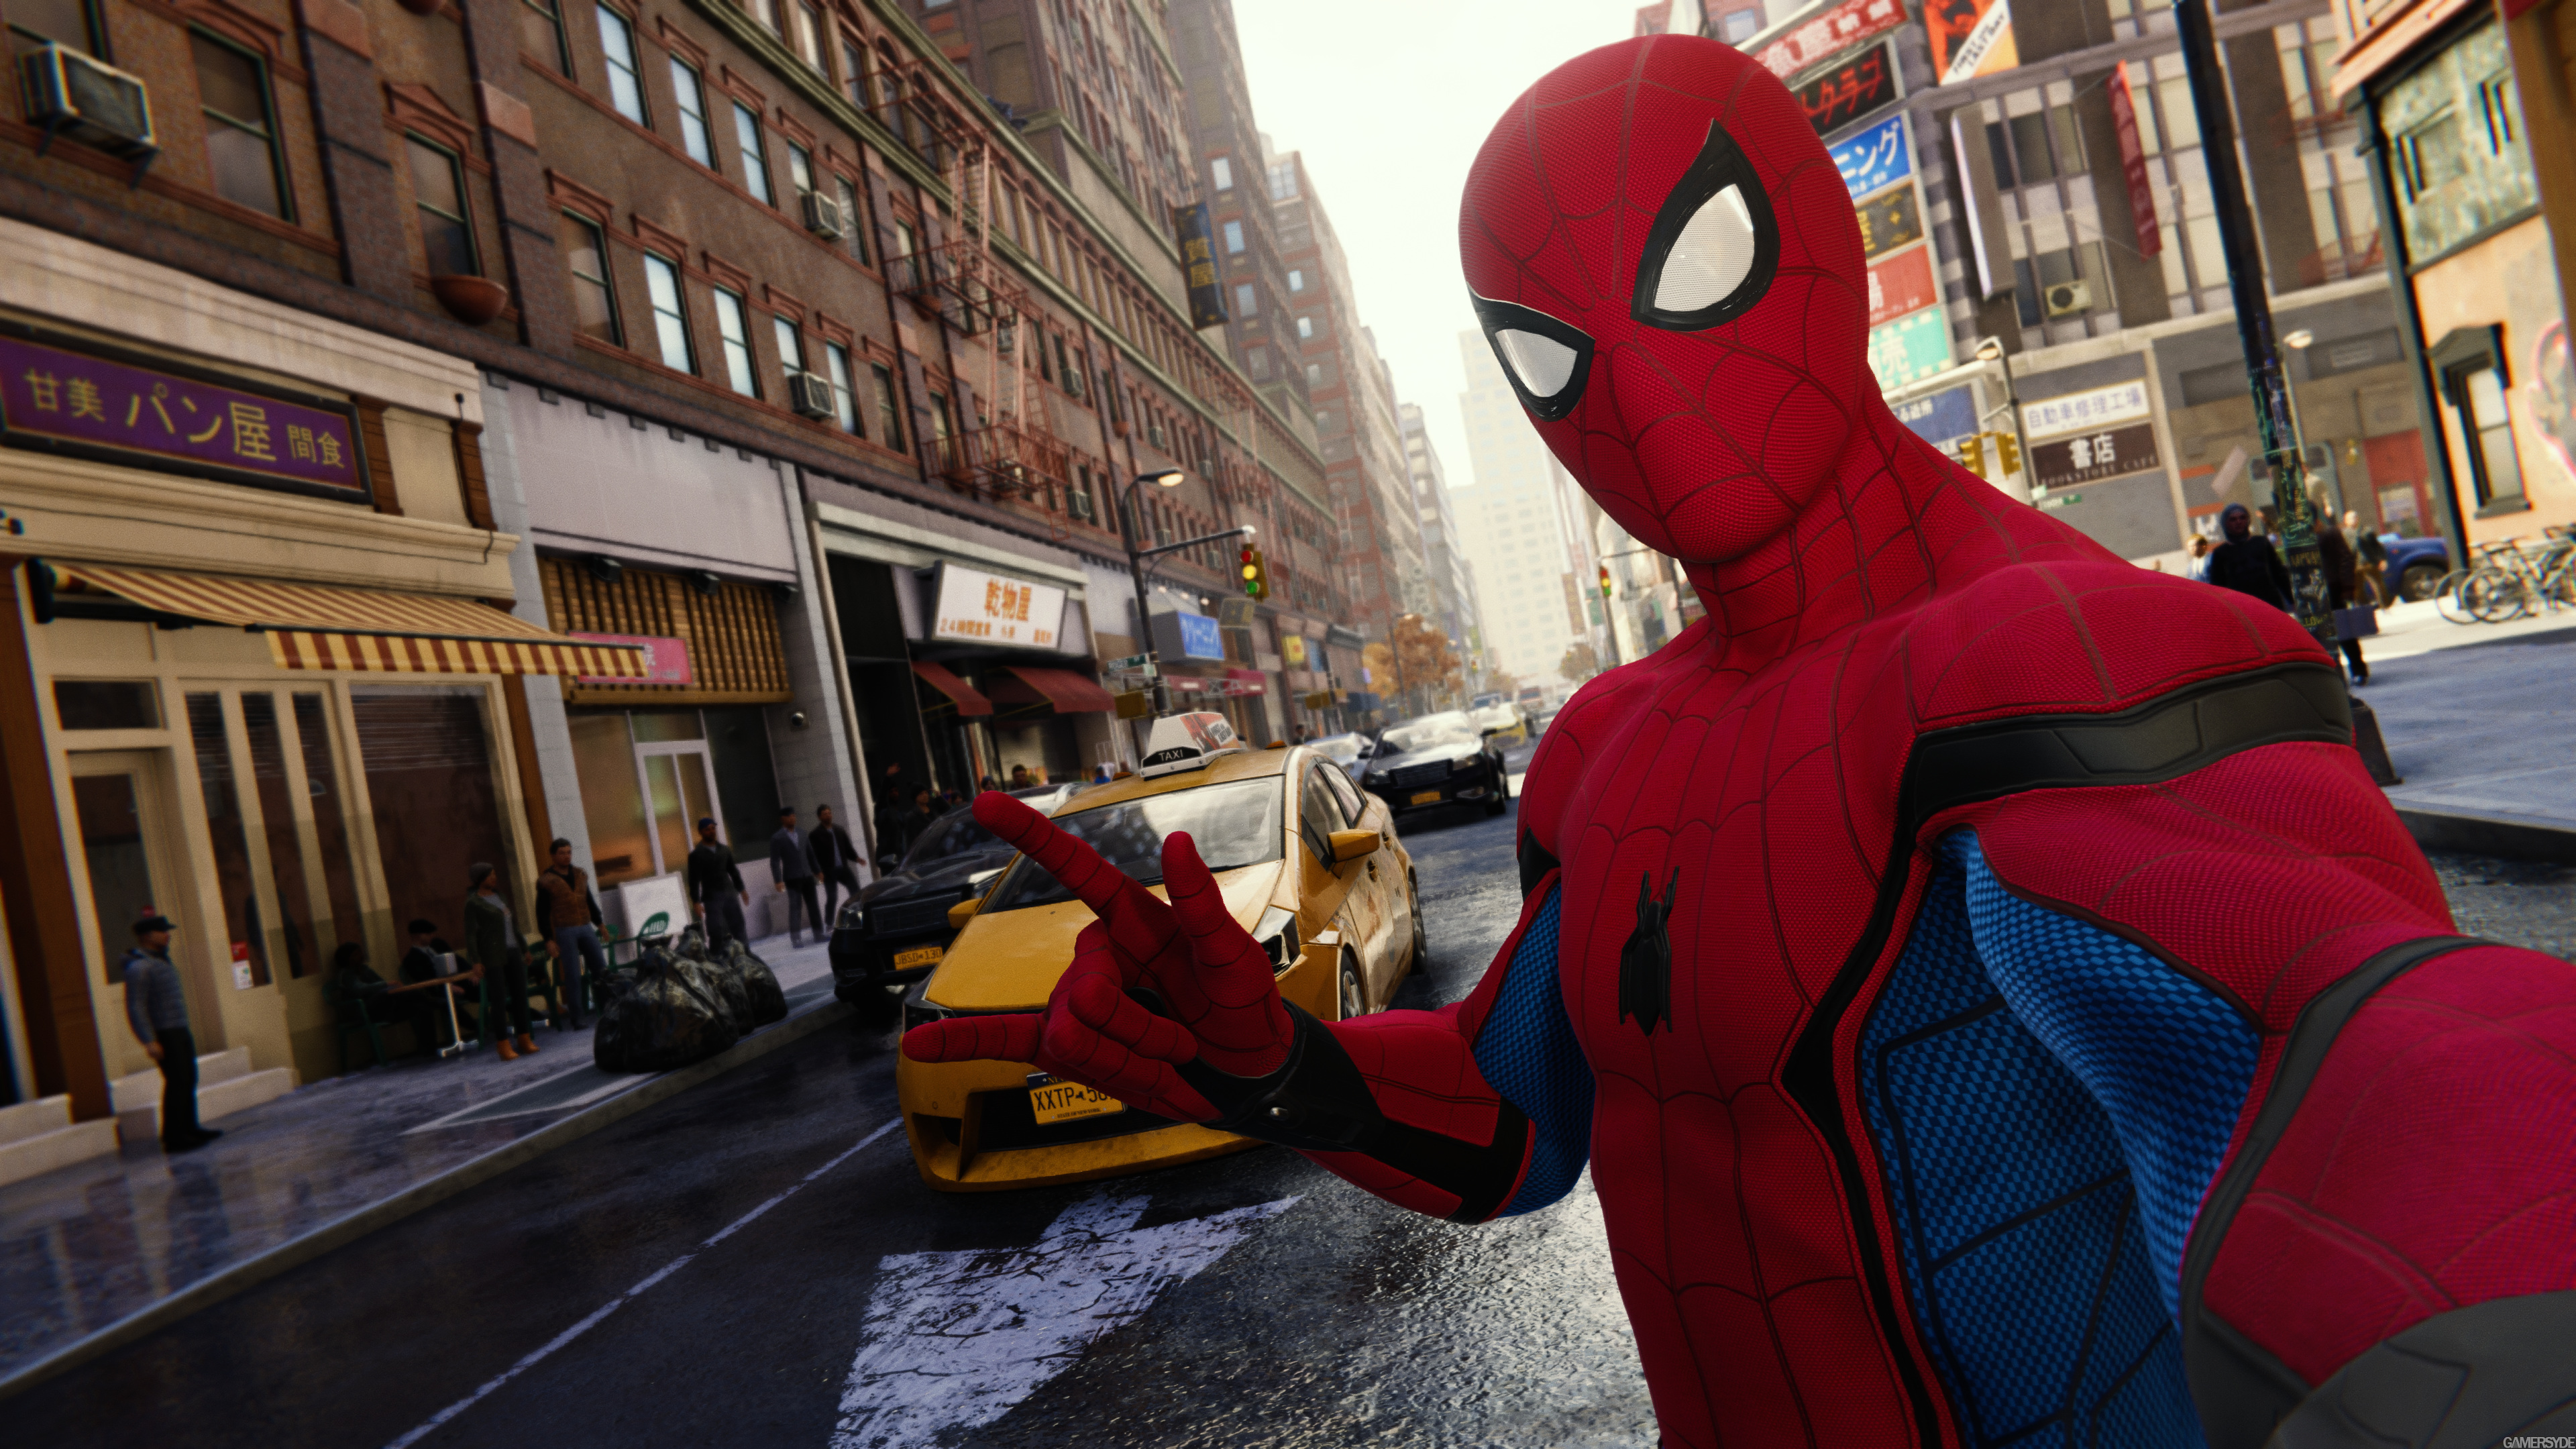 spiderman taking selfie ps4 2018 1537692366 - Spiderman Taking Selfie Ps4 2018 - spiderman wallpapers, spiderman ps4 wallpapers, ps games wallpapers, hd-wallpapers, games wallpapers, 4k-wallpapers, 2018 games wallpapers